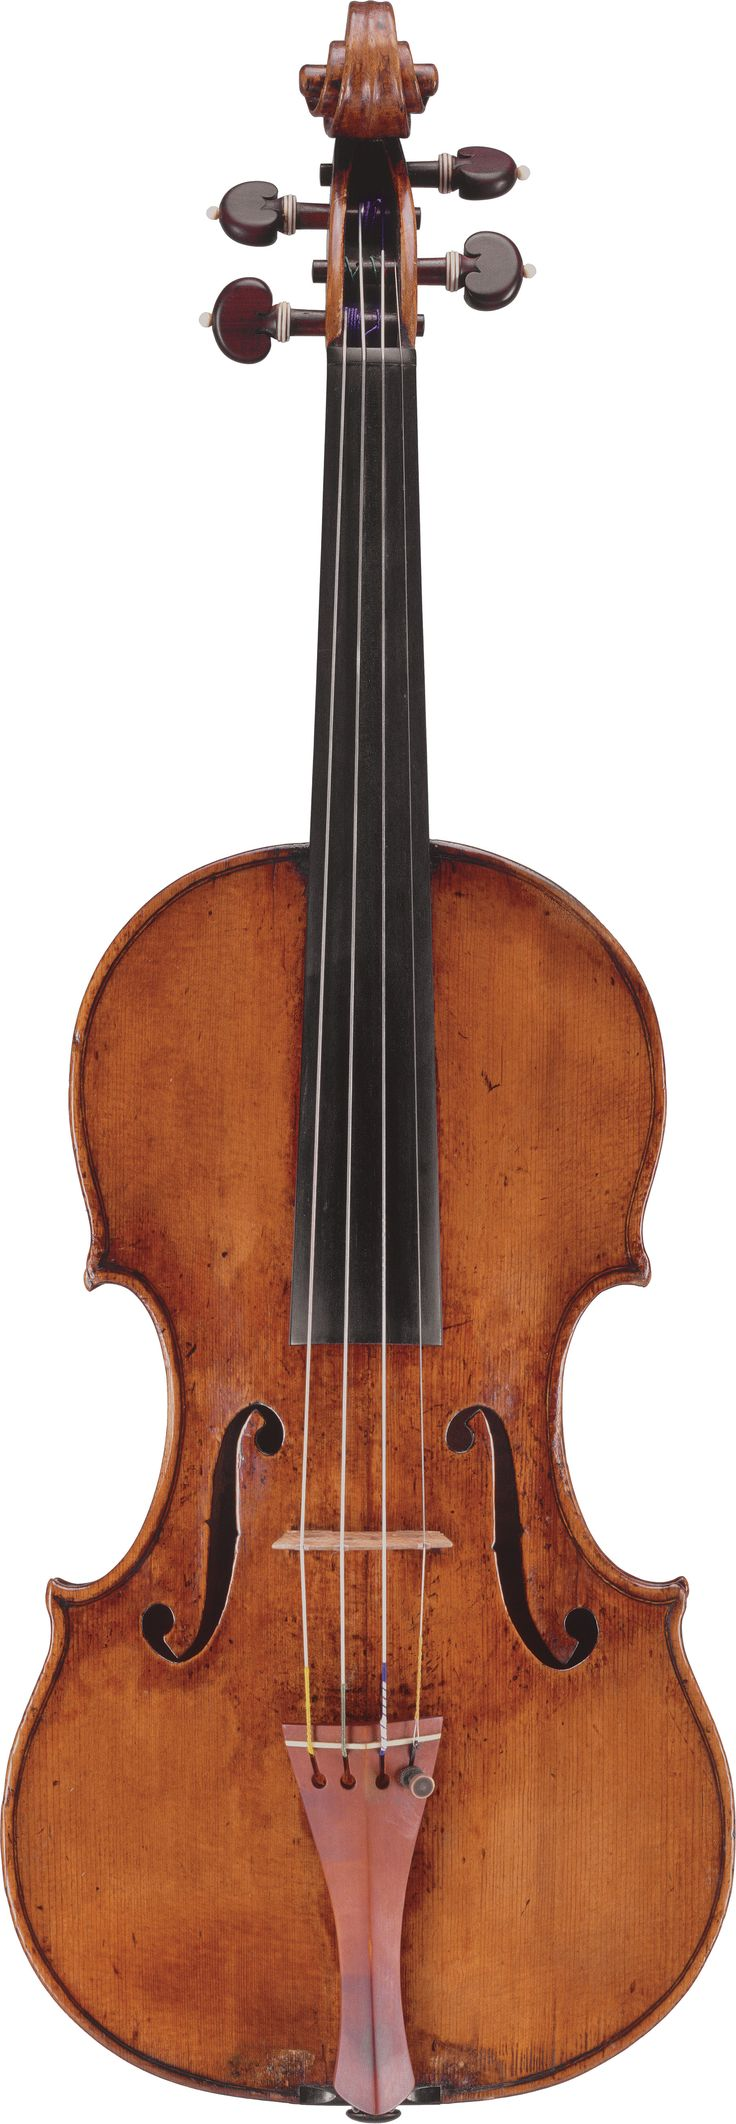 1739 Guarneri Del Gesu Violin ex-Menuhin from The Four Centuries Gallery